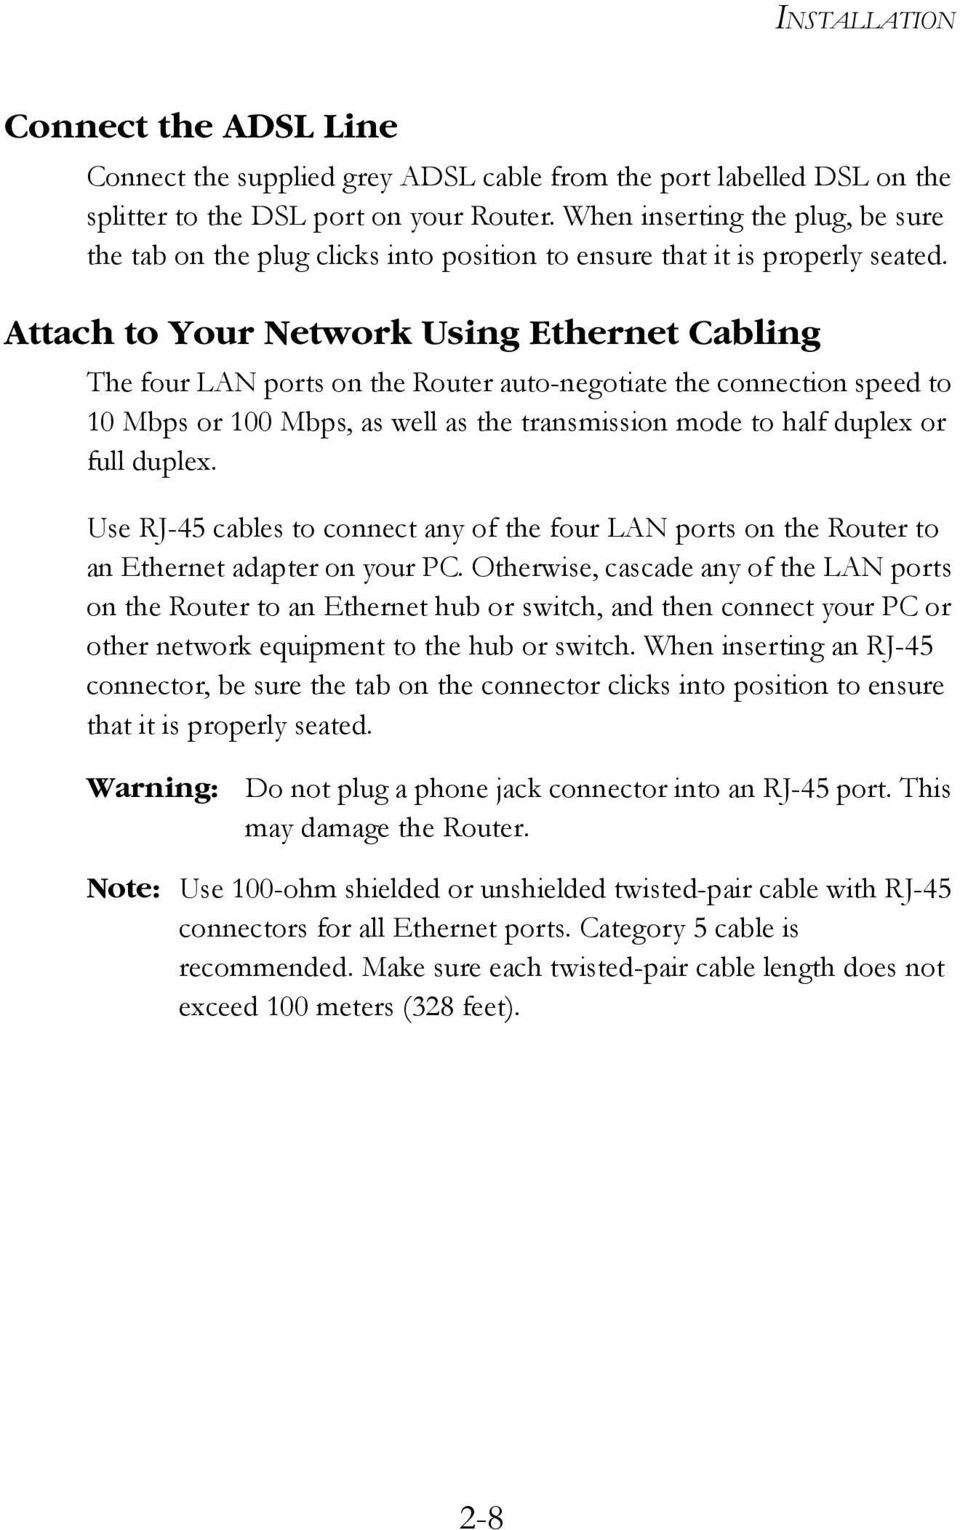 Attach to Your Network Using Ethernet Cabling The four LAN ports on the Router auto-negotiate the connection speed to 10 Mbps or 100 Mbps, as well as the transmission mode to half duplex or full